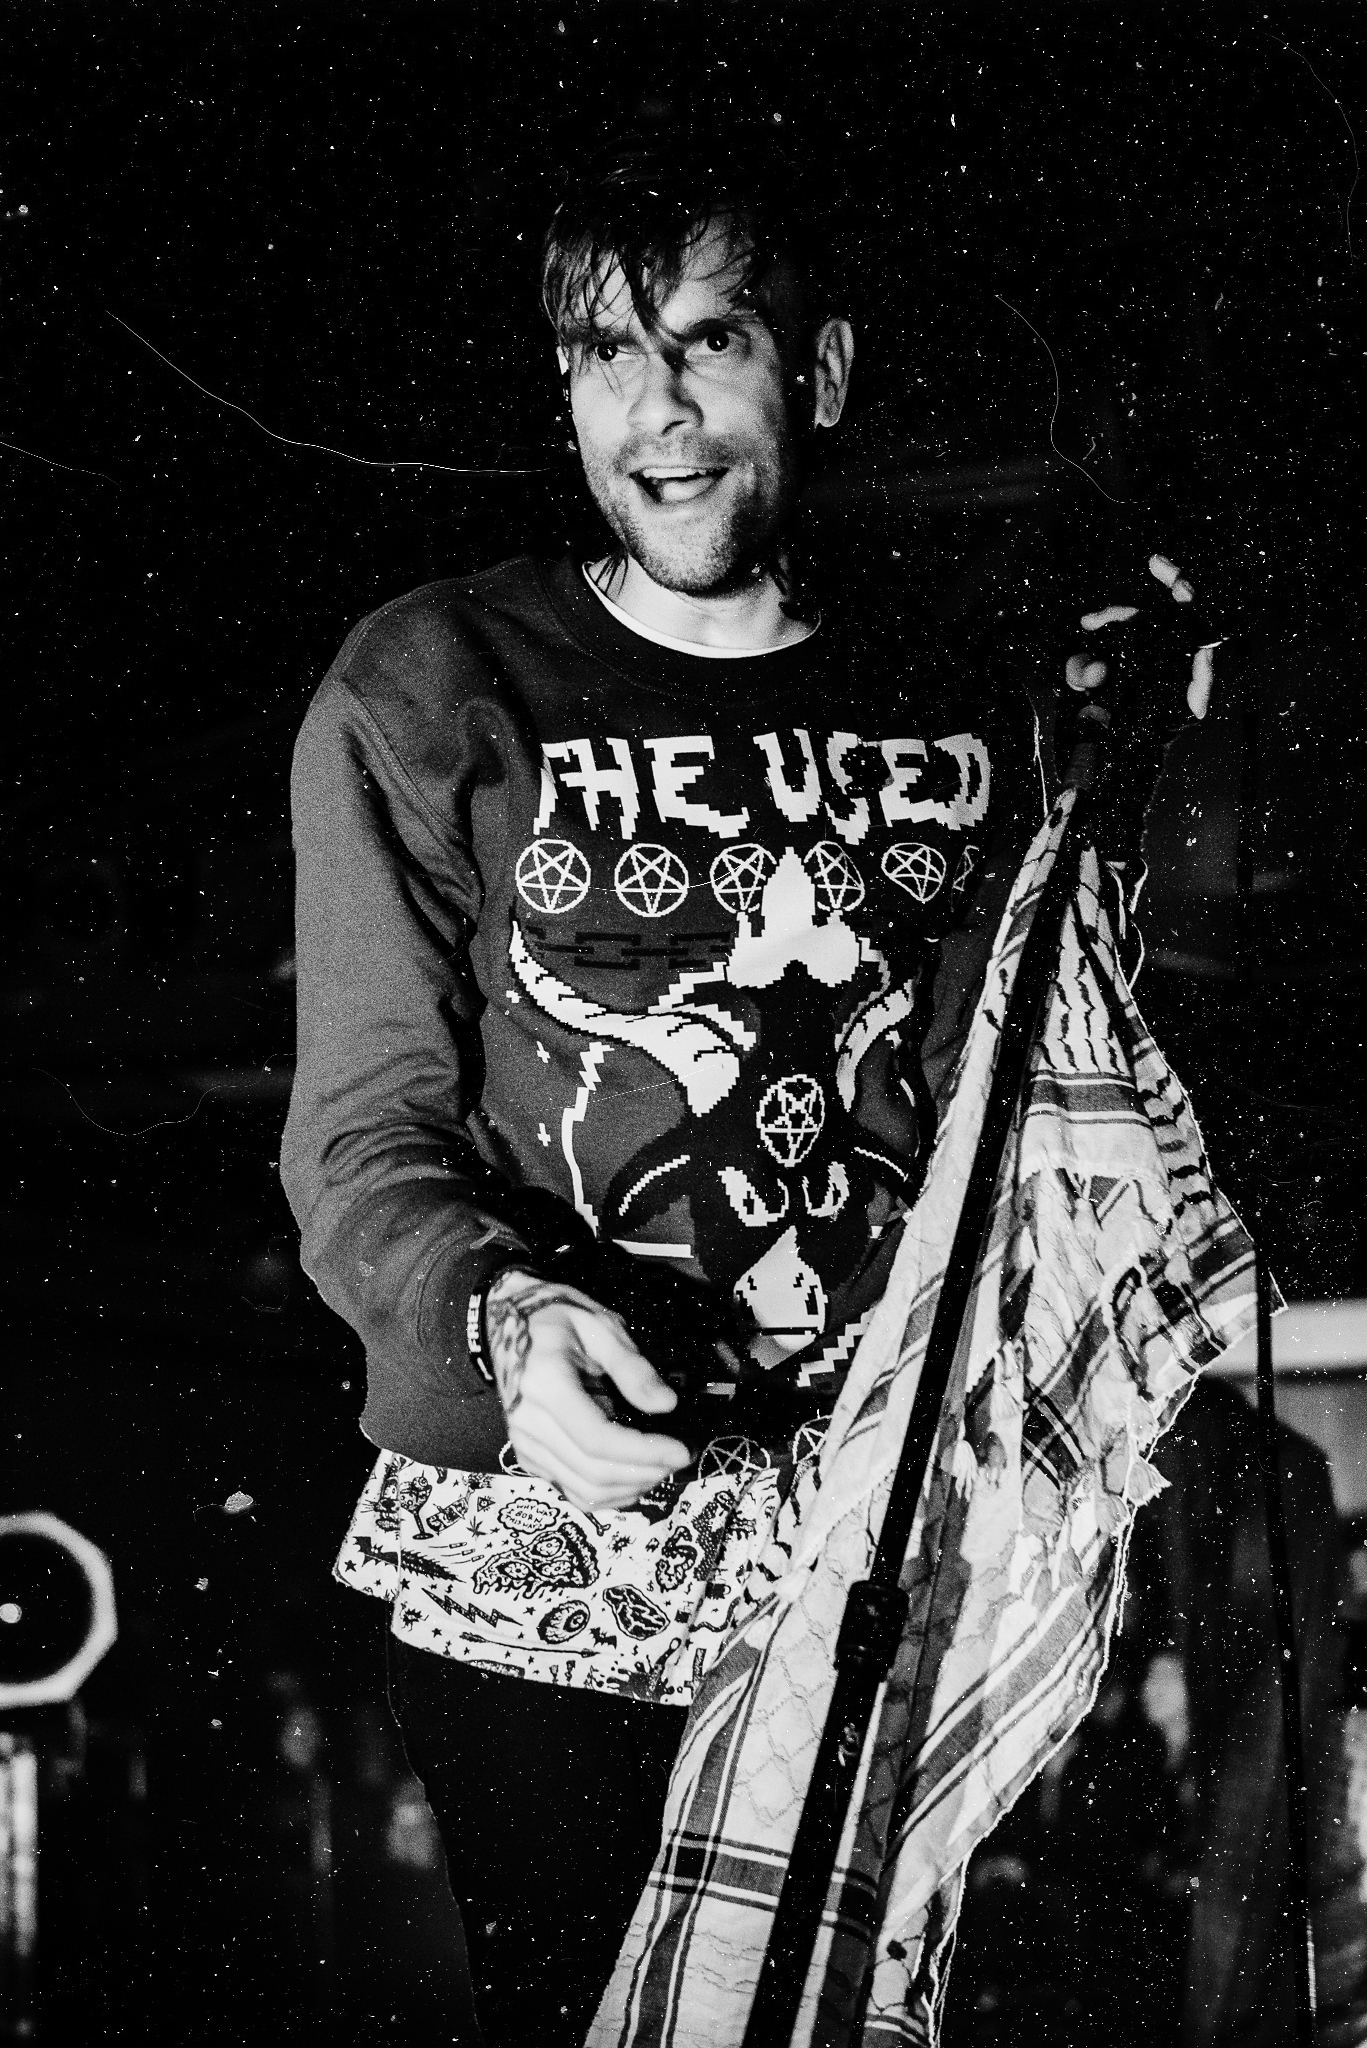 The Used Starland Ballroom Stars and Scars Photo